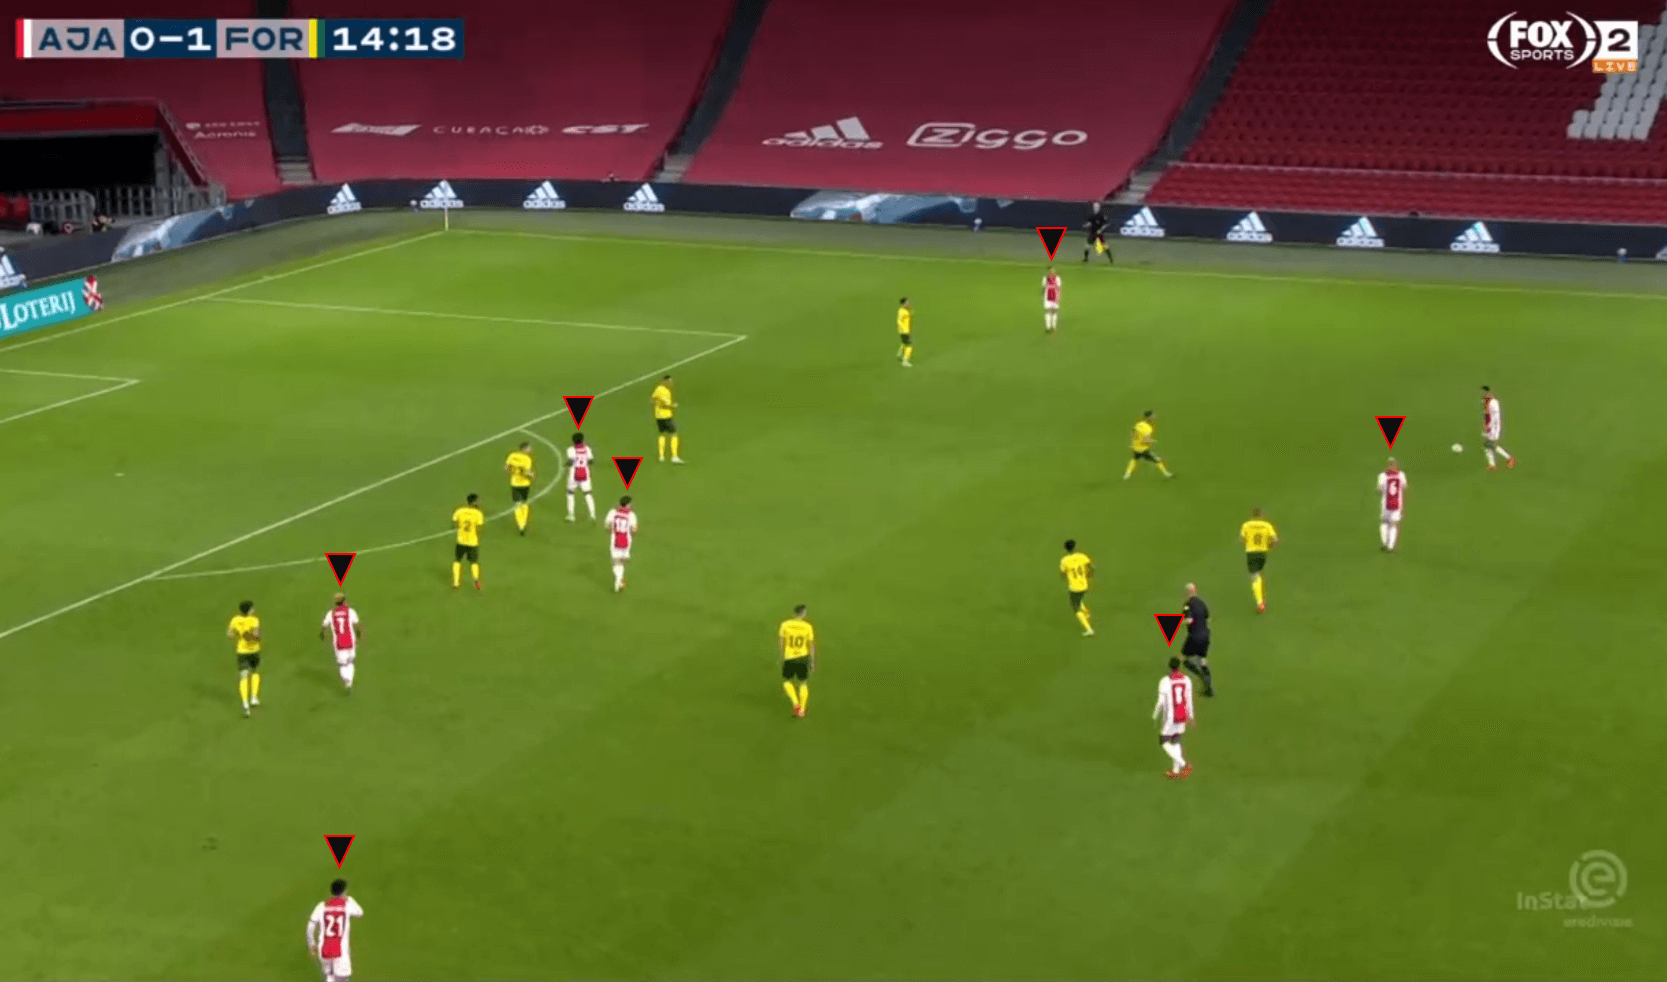 Eredivisie 2020/21: Ajax vs Fortuna Sittard – Tactical Analysis tactics